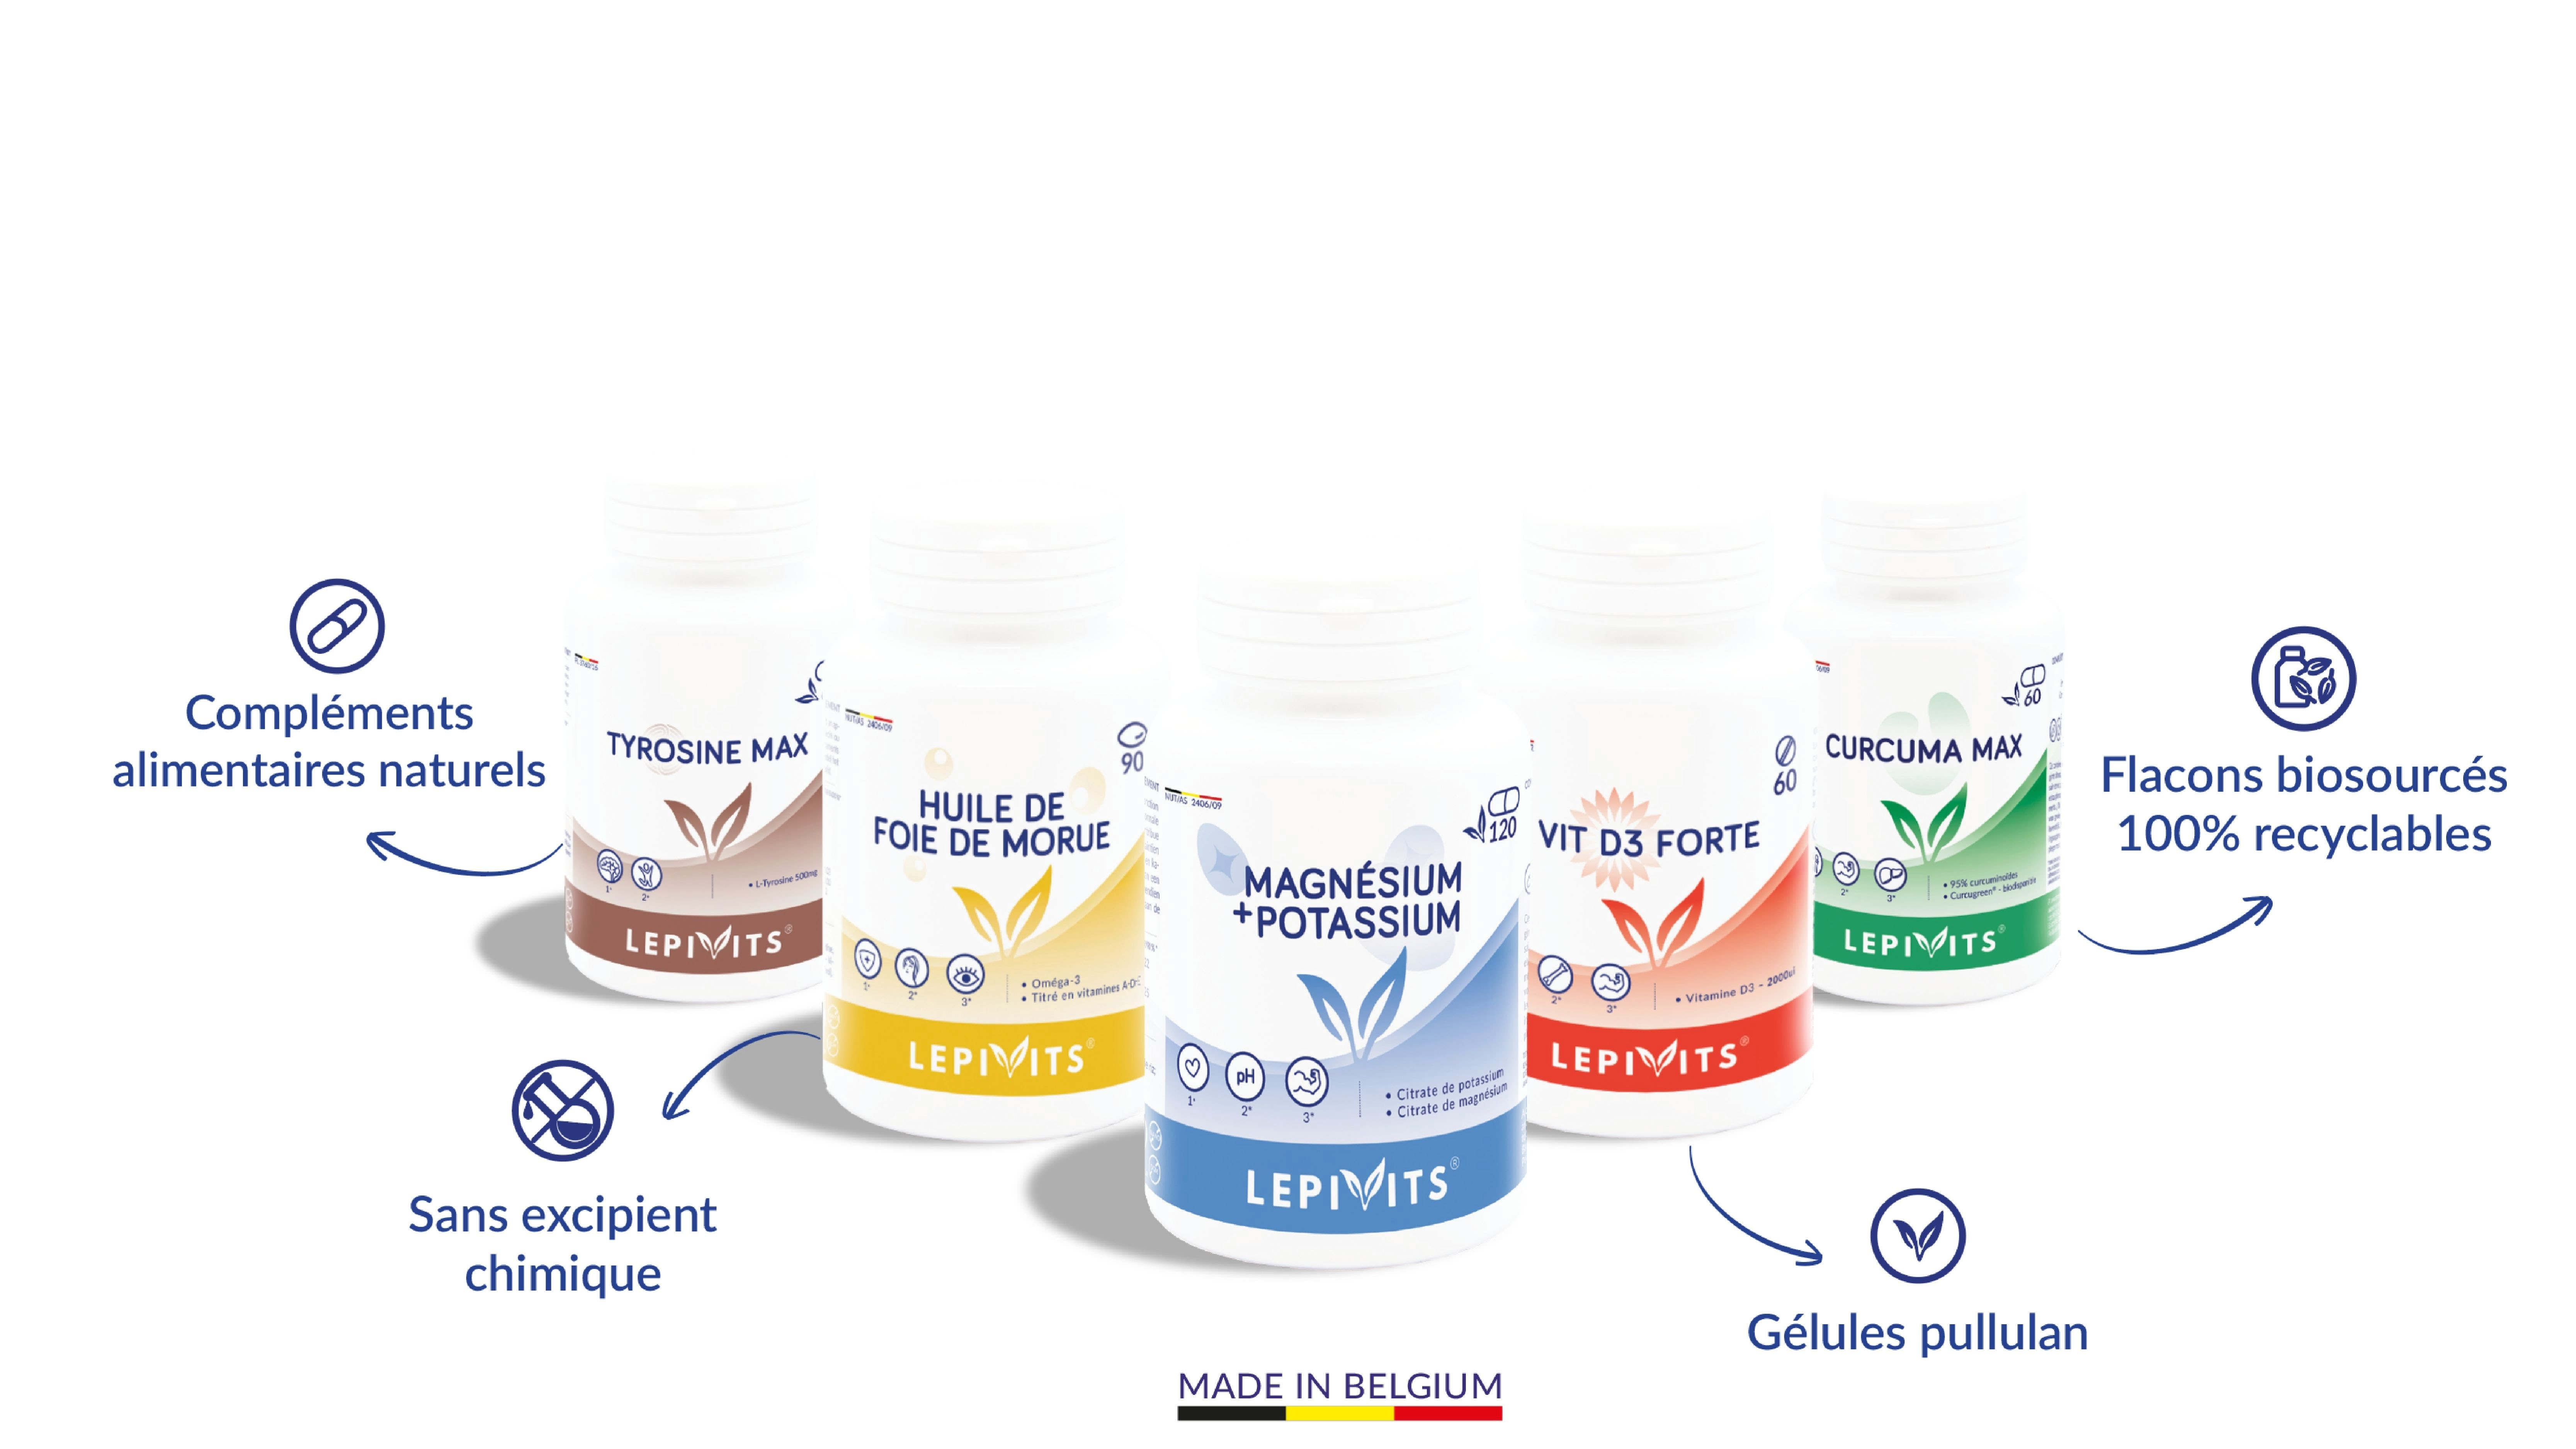 Lepivits products